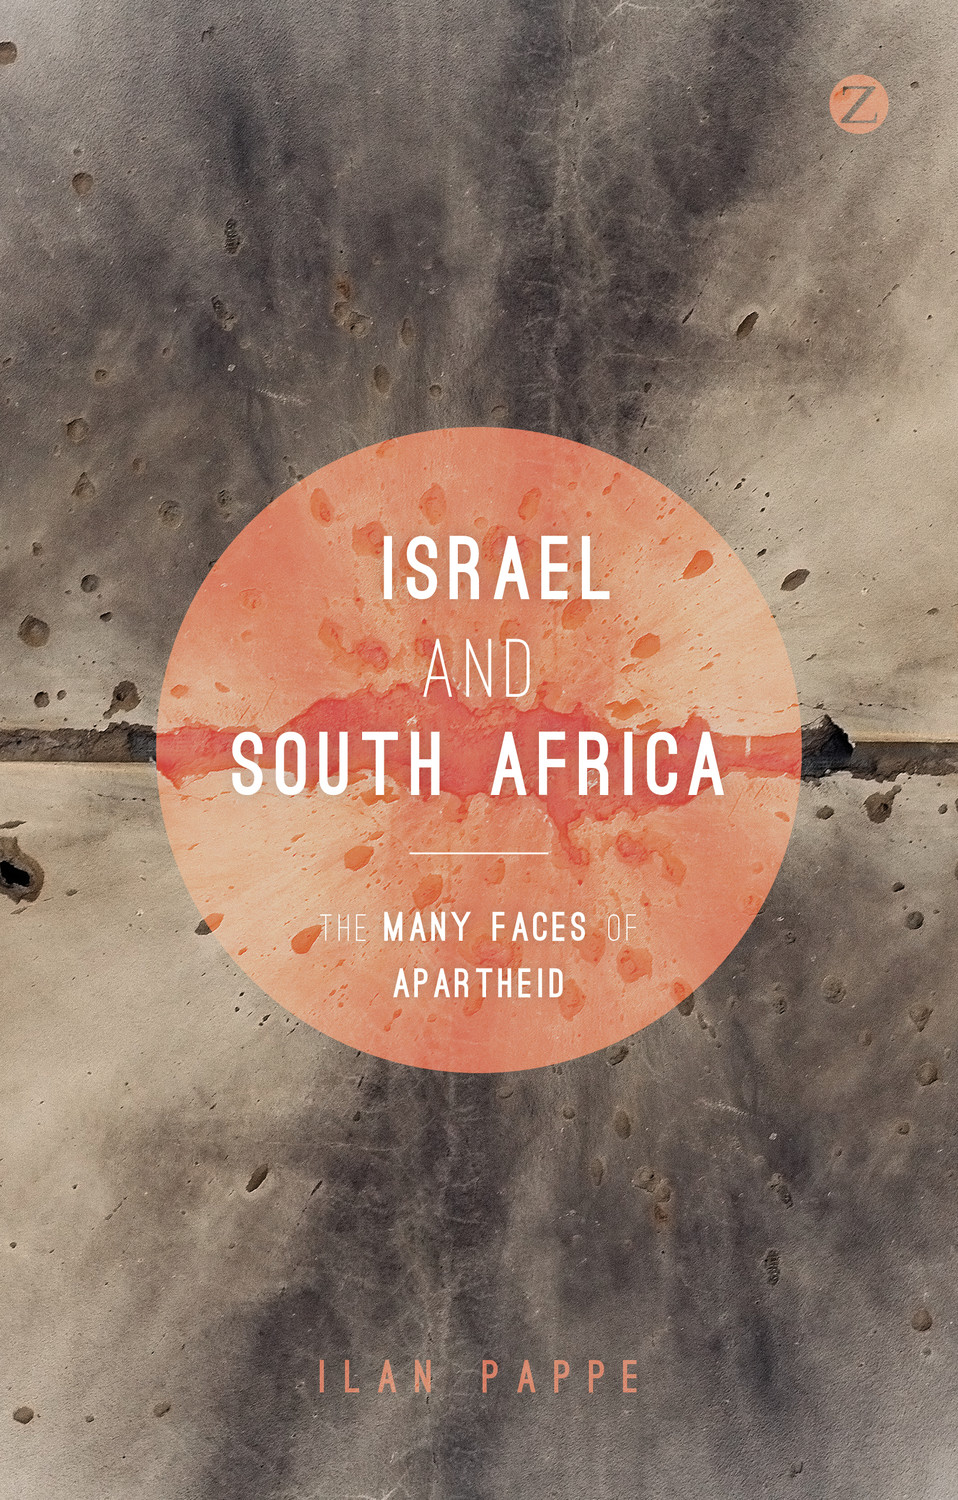 post-apartheid-south-africa-a-model-for-the-future-israel